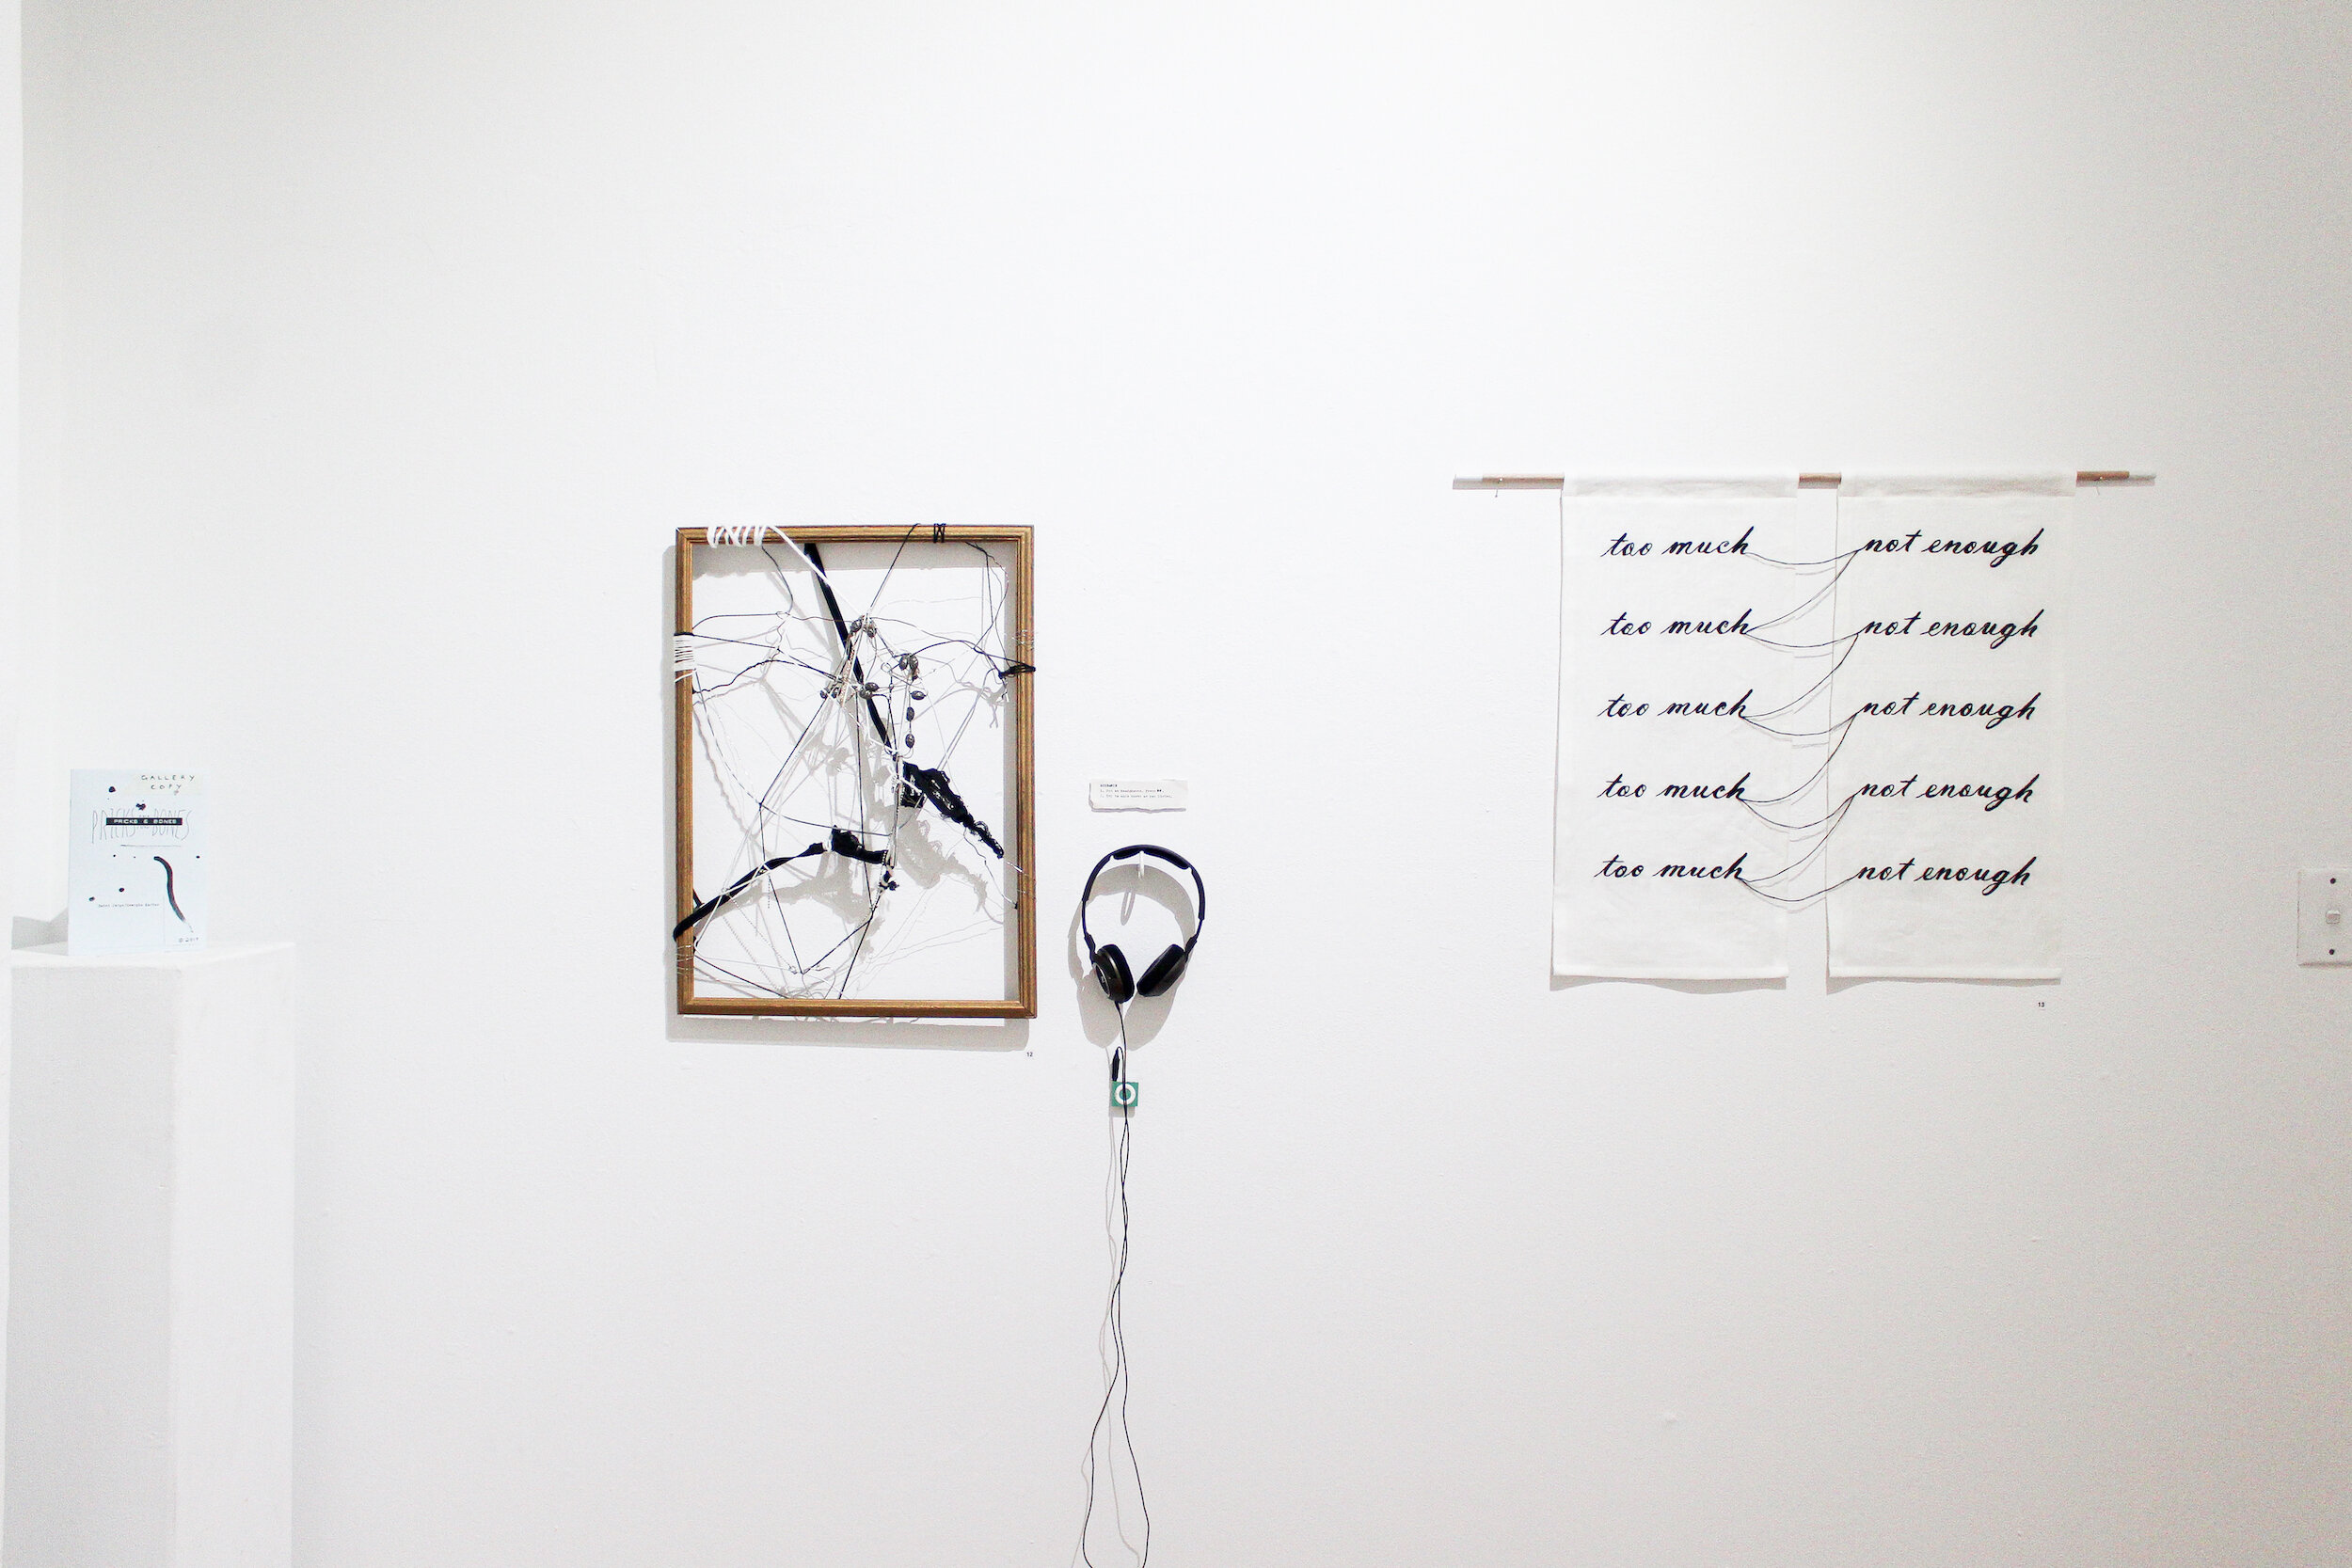 Georgia Kartas/Saint Jorge,  Pricks and Bones , audio recording, wooden frame, wire, chain link, string, 21x 30cm.  Amelia Dowling,  All-or-nothing thinking , 2019, hand embroidery, linen, cotton, wood, acrylic paint, 85 x 60cm